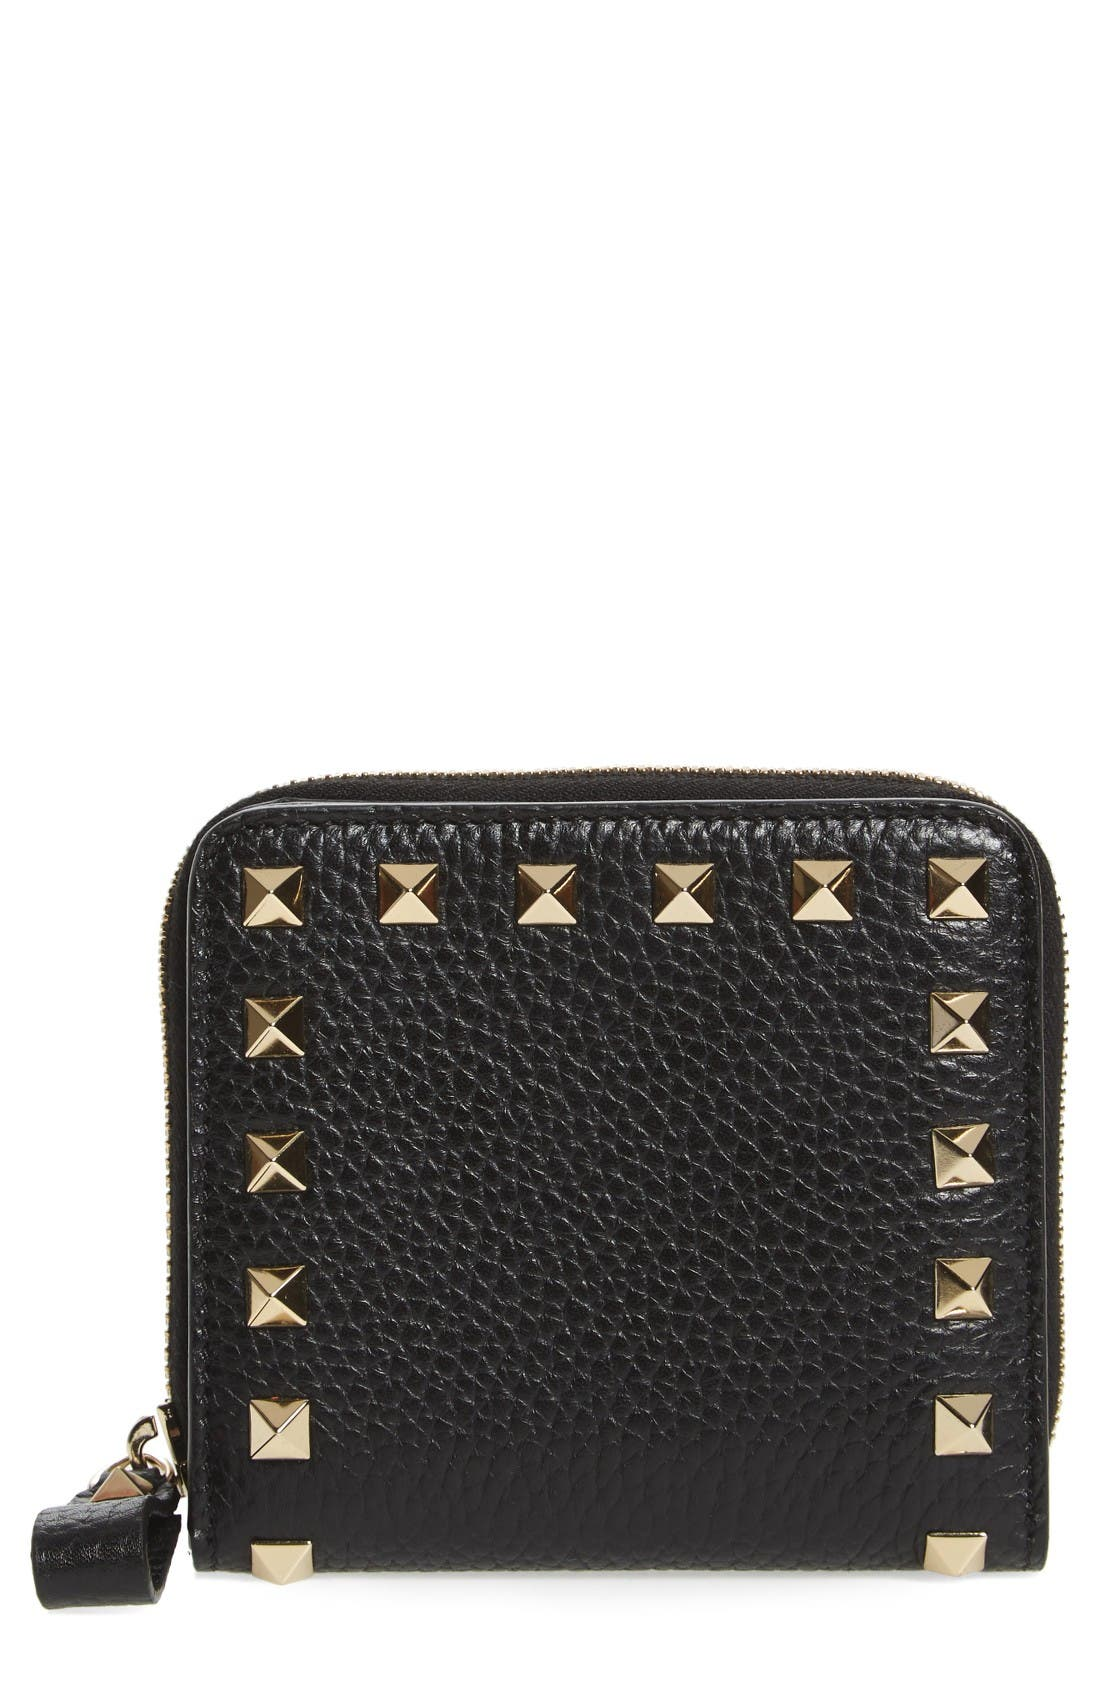 VALENTINO GARAVANI Rockstud Lambskin Leather Zip Around Wallet